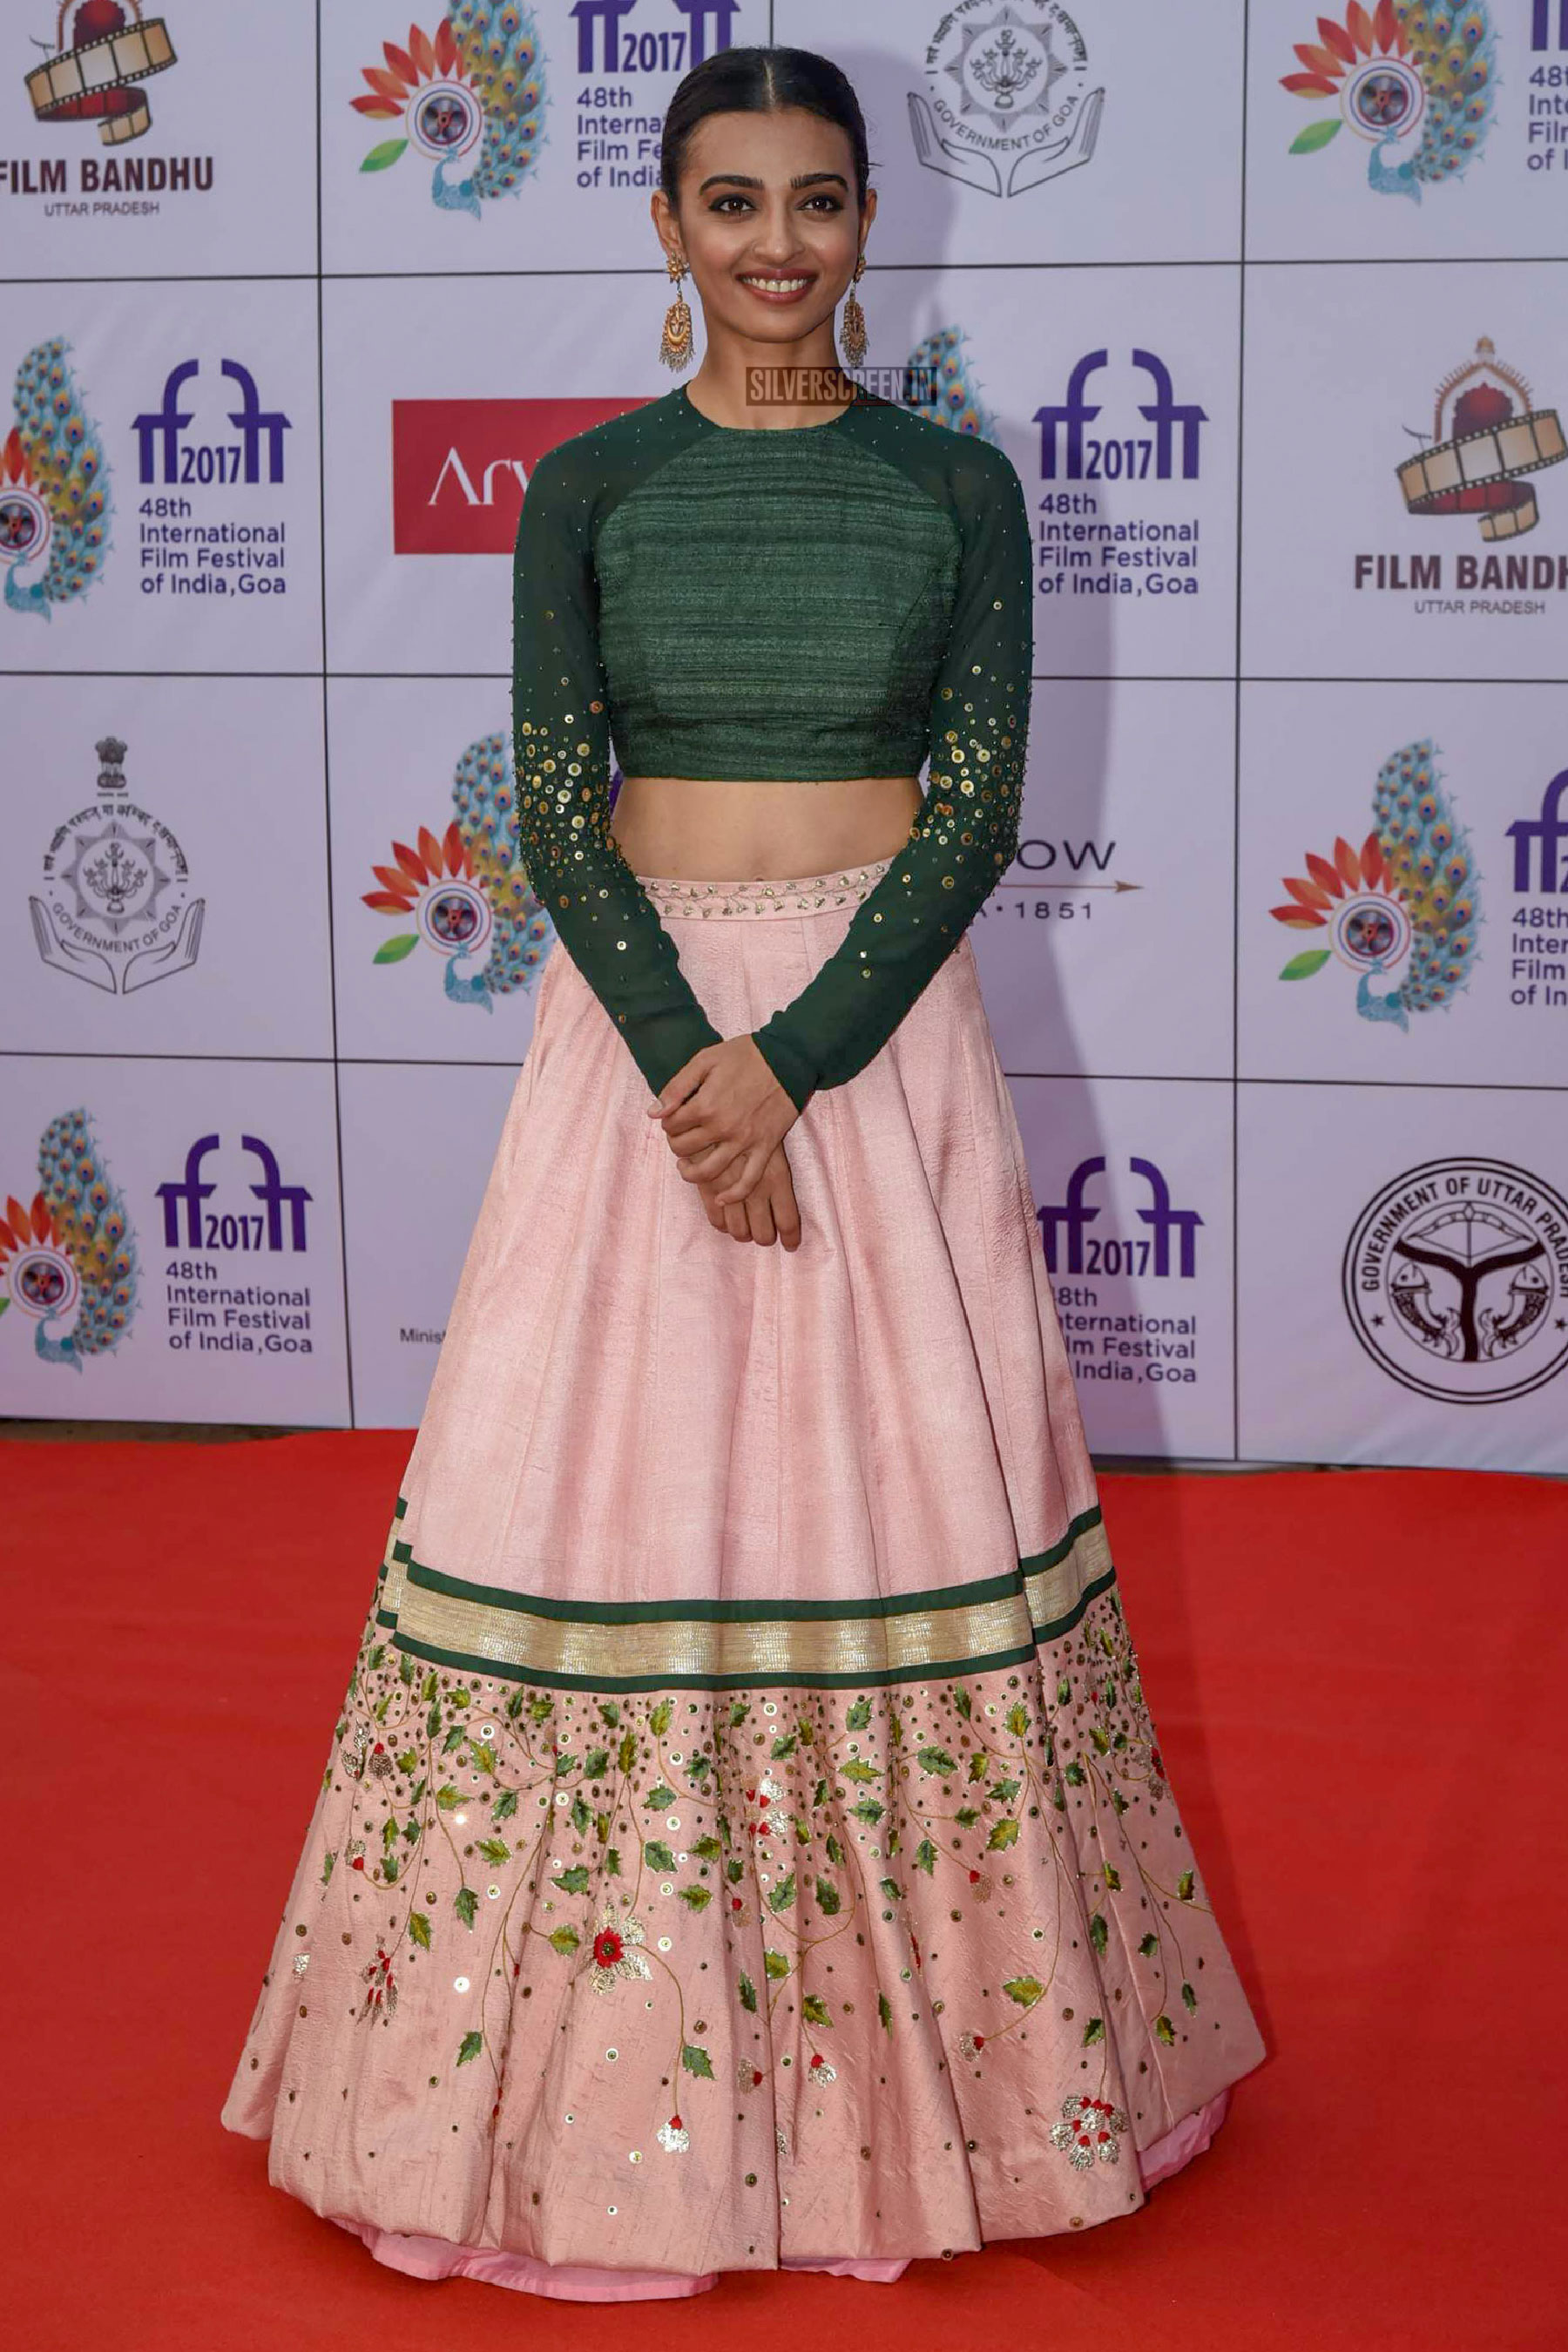 Radhika Apte on the first day of International Film Festival of India (IFFI) in Goa.